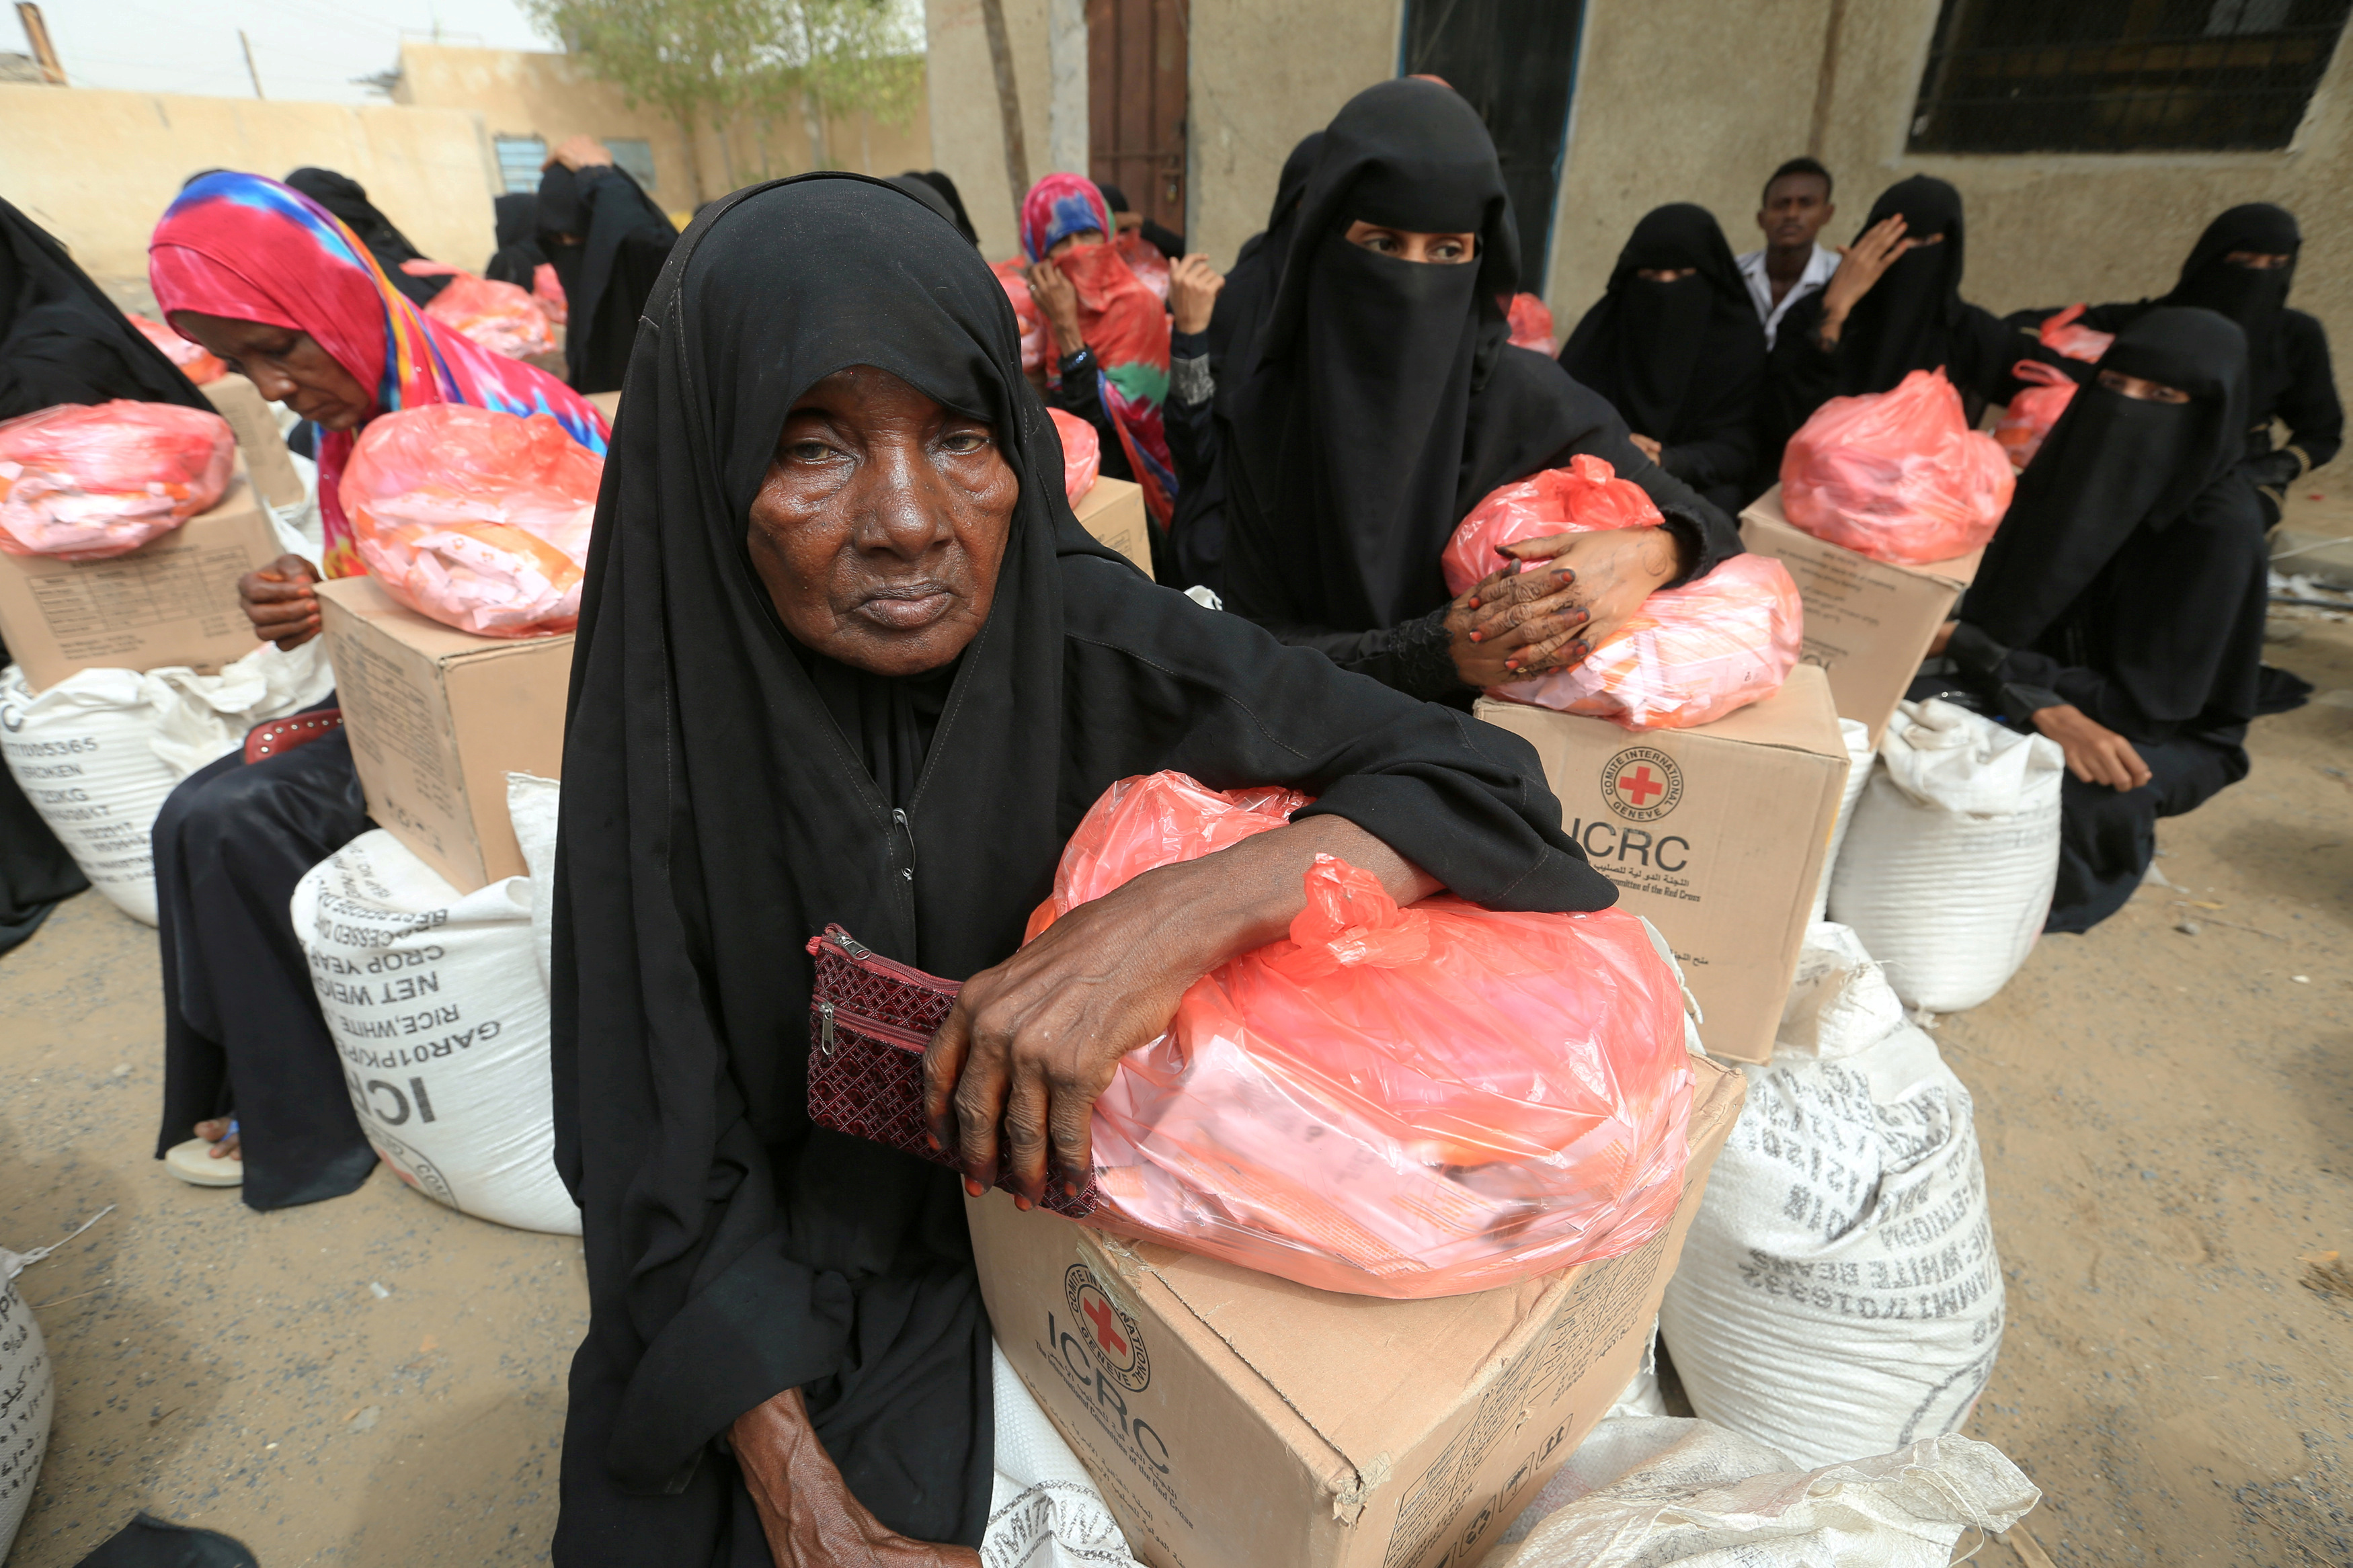 Women sit next to food aid delivered by the International Committee of the Red Cross to internally displaced people in the Red Sea port city of Hodeida, Yemen, July 21, 2018.